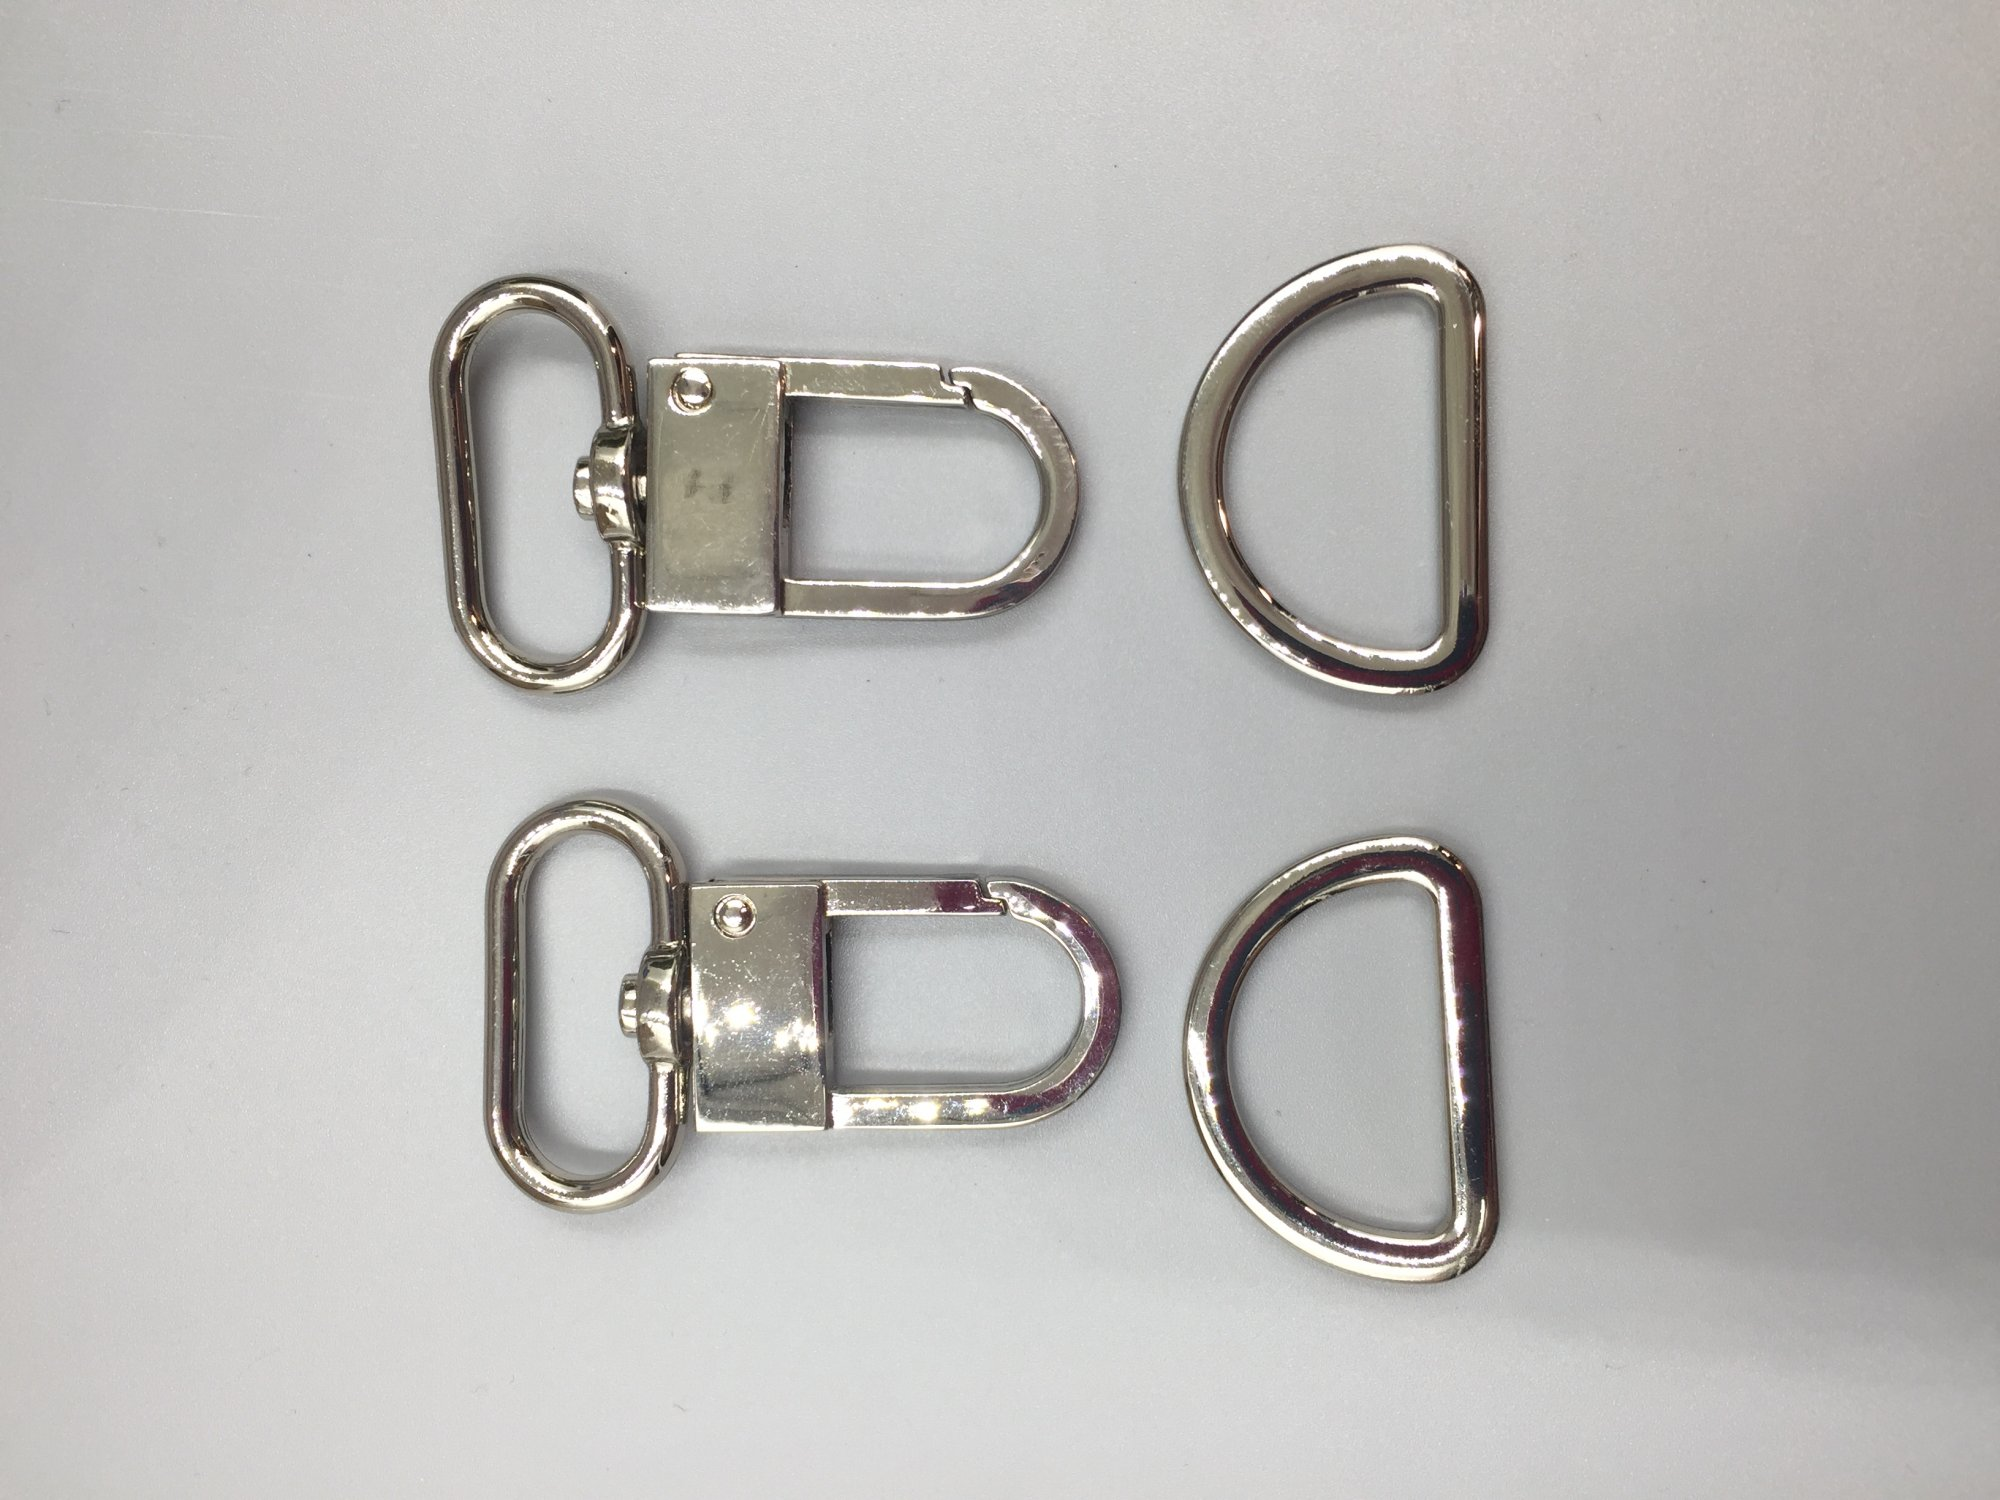 1 Swivel Hook Set - Shiny Nickel